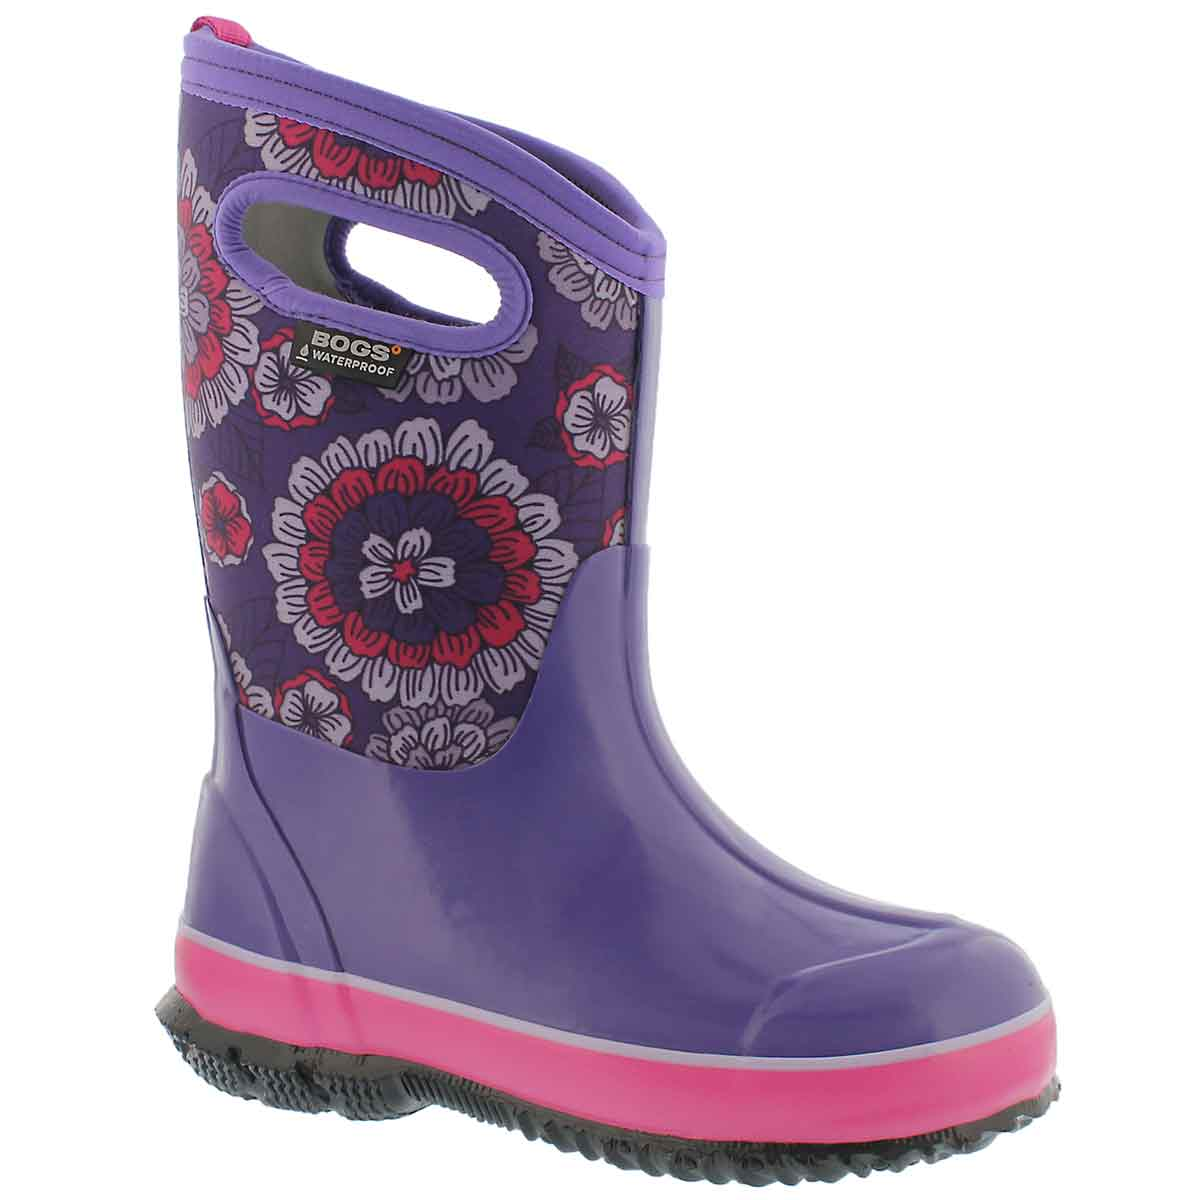 Girls' CLASSIC PANSIES ppl multi waterproof boots